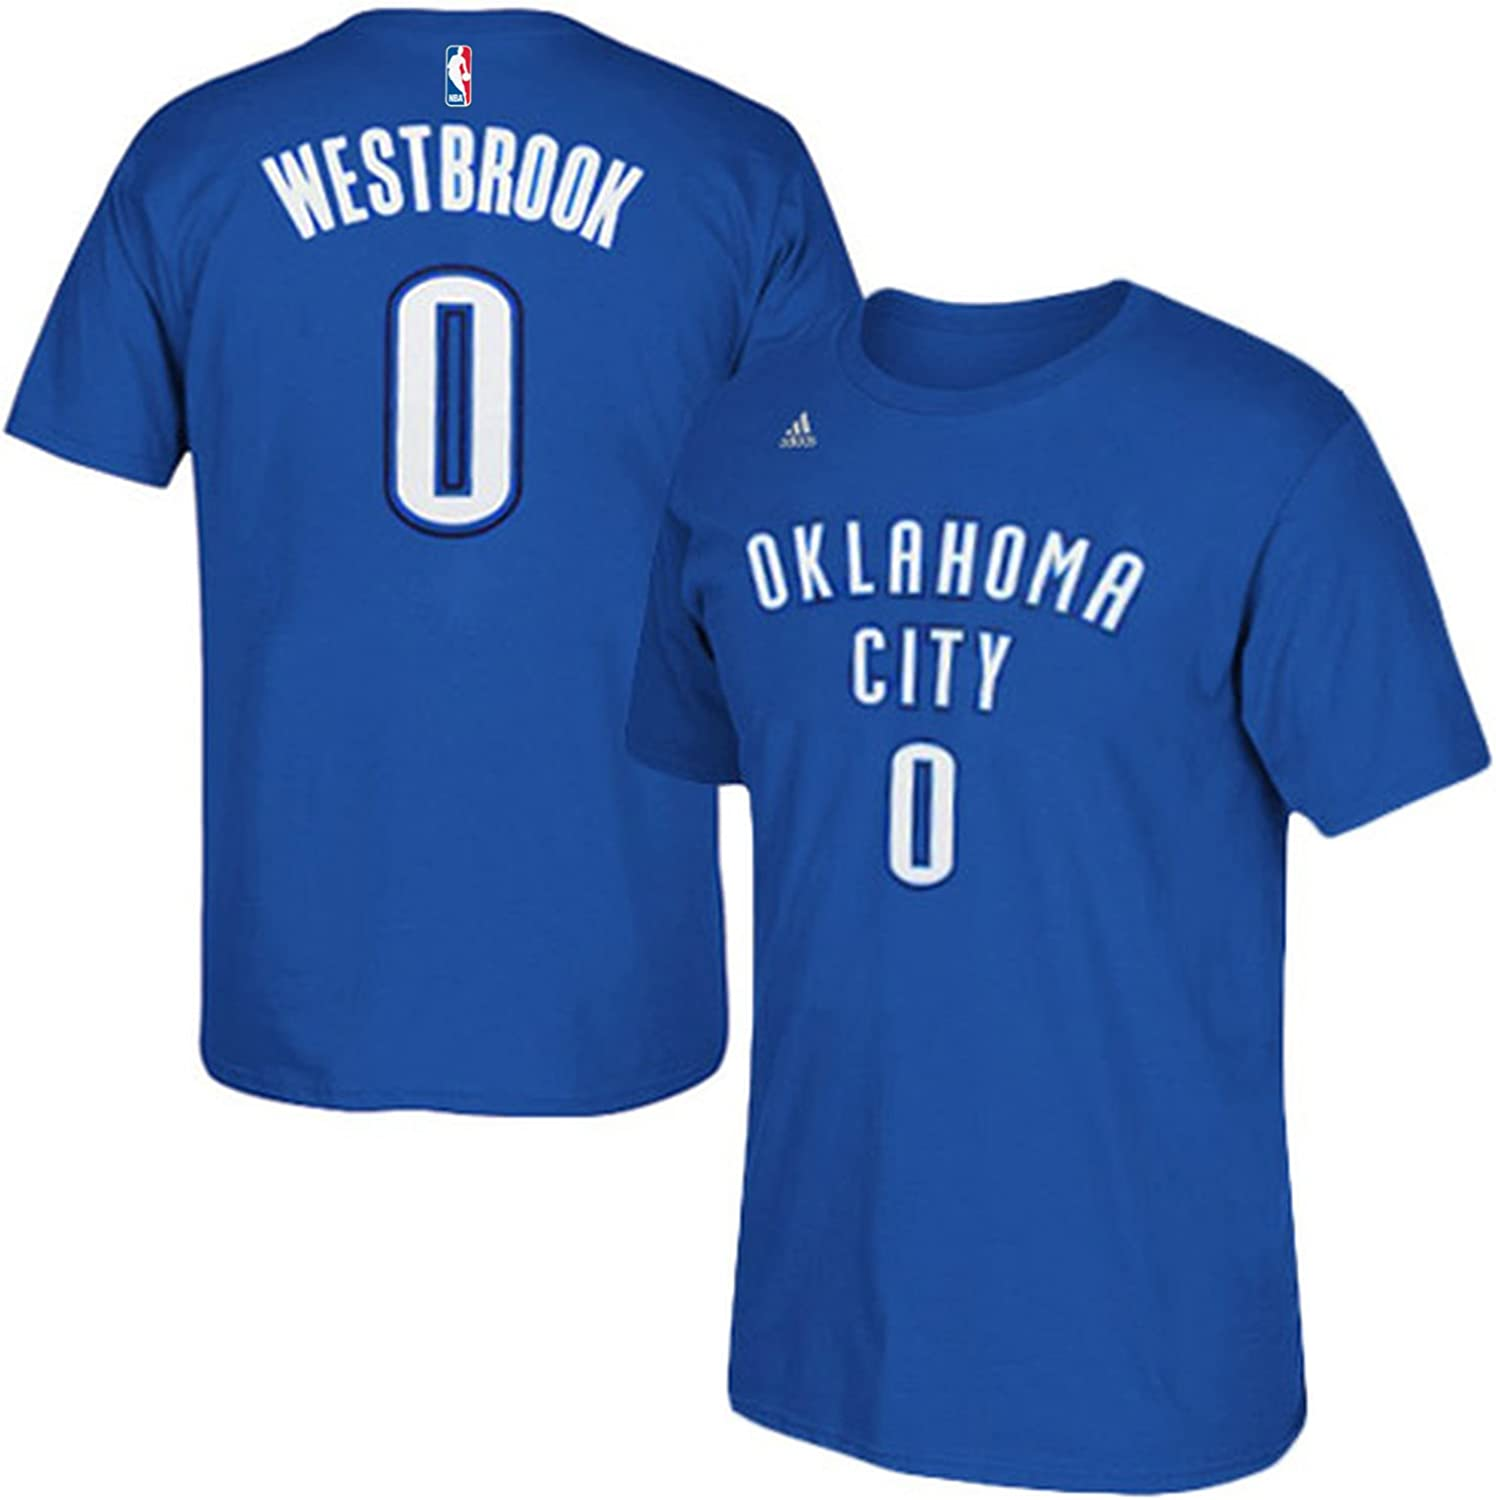 NBA Youth 8-20 Performance Game Time Team Color Player Name and Number Jersey T-Shirt (Small 8, Russell Westbrook)